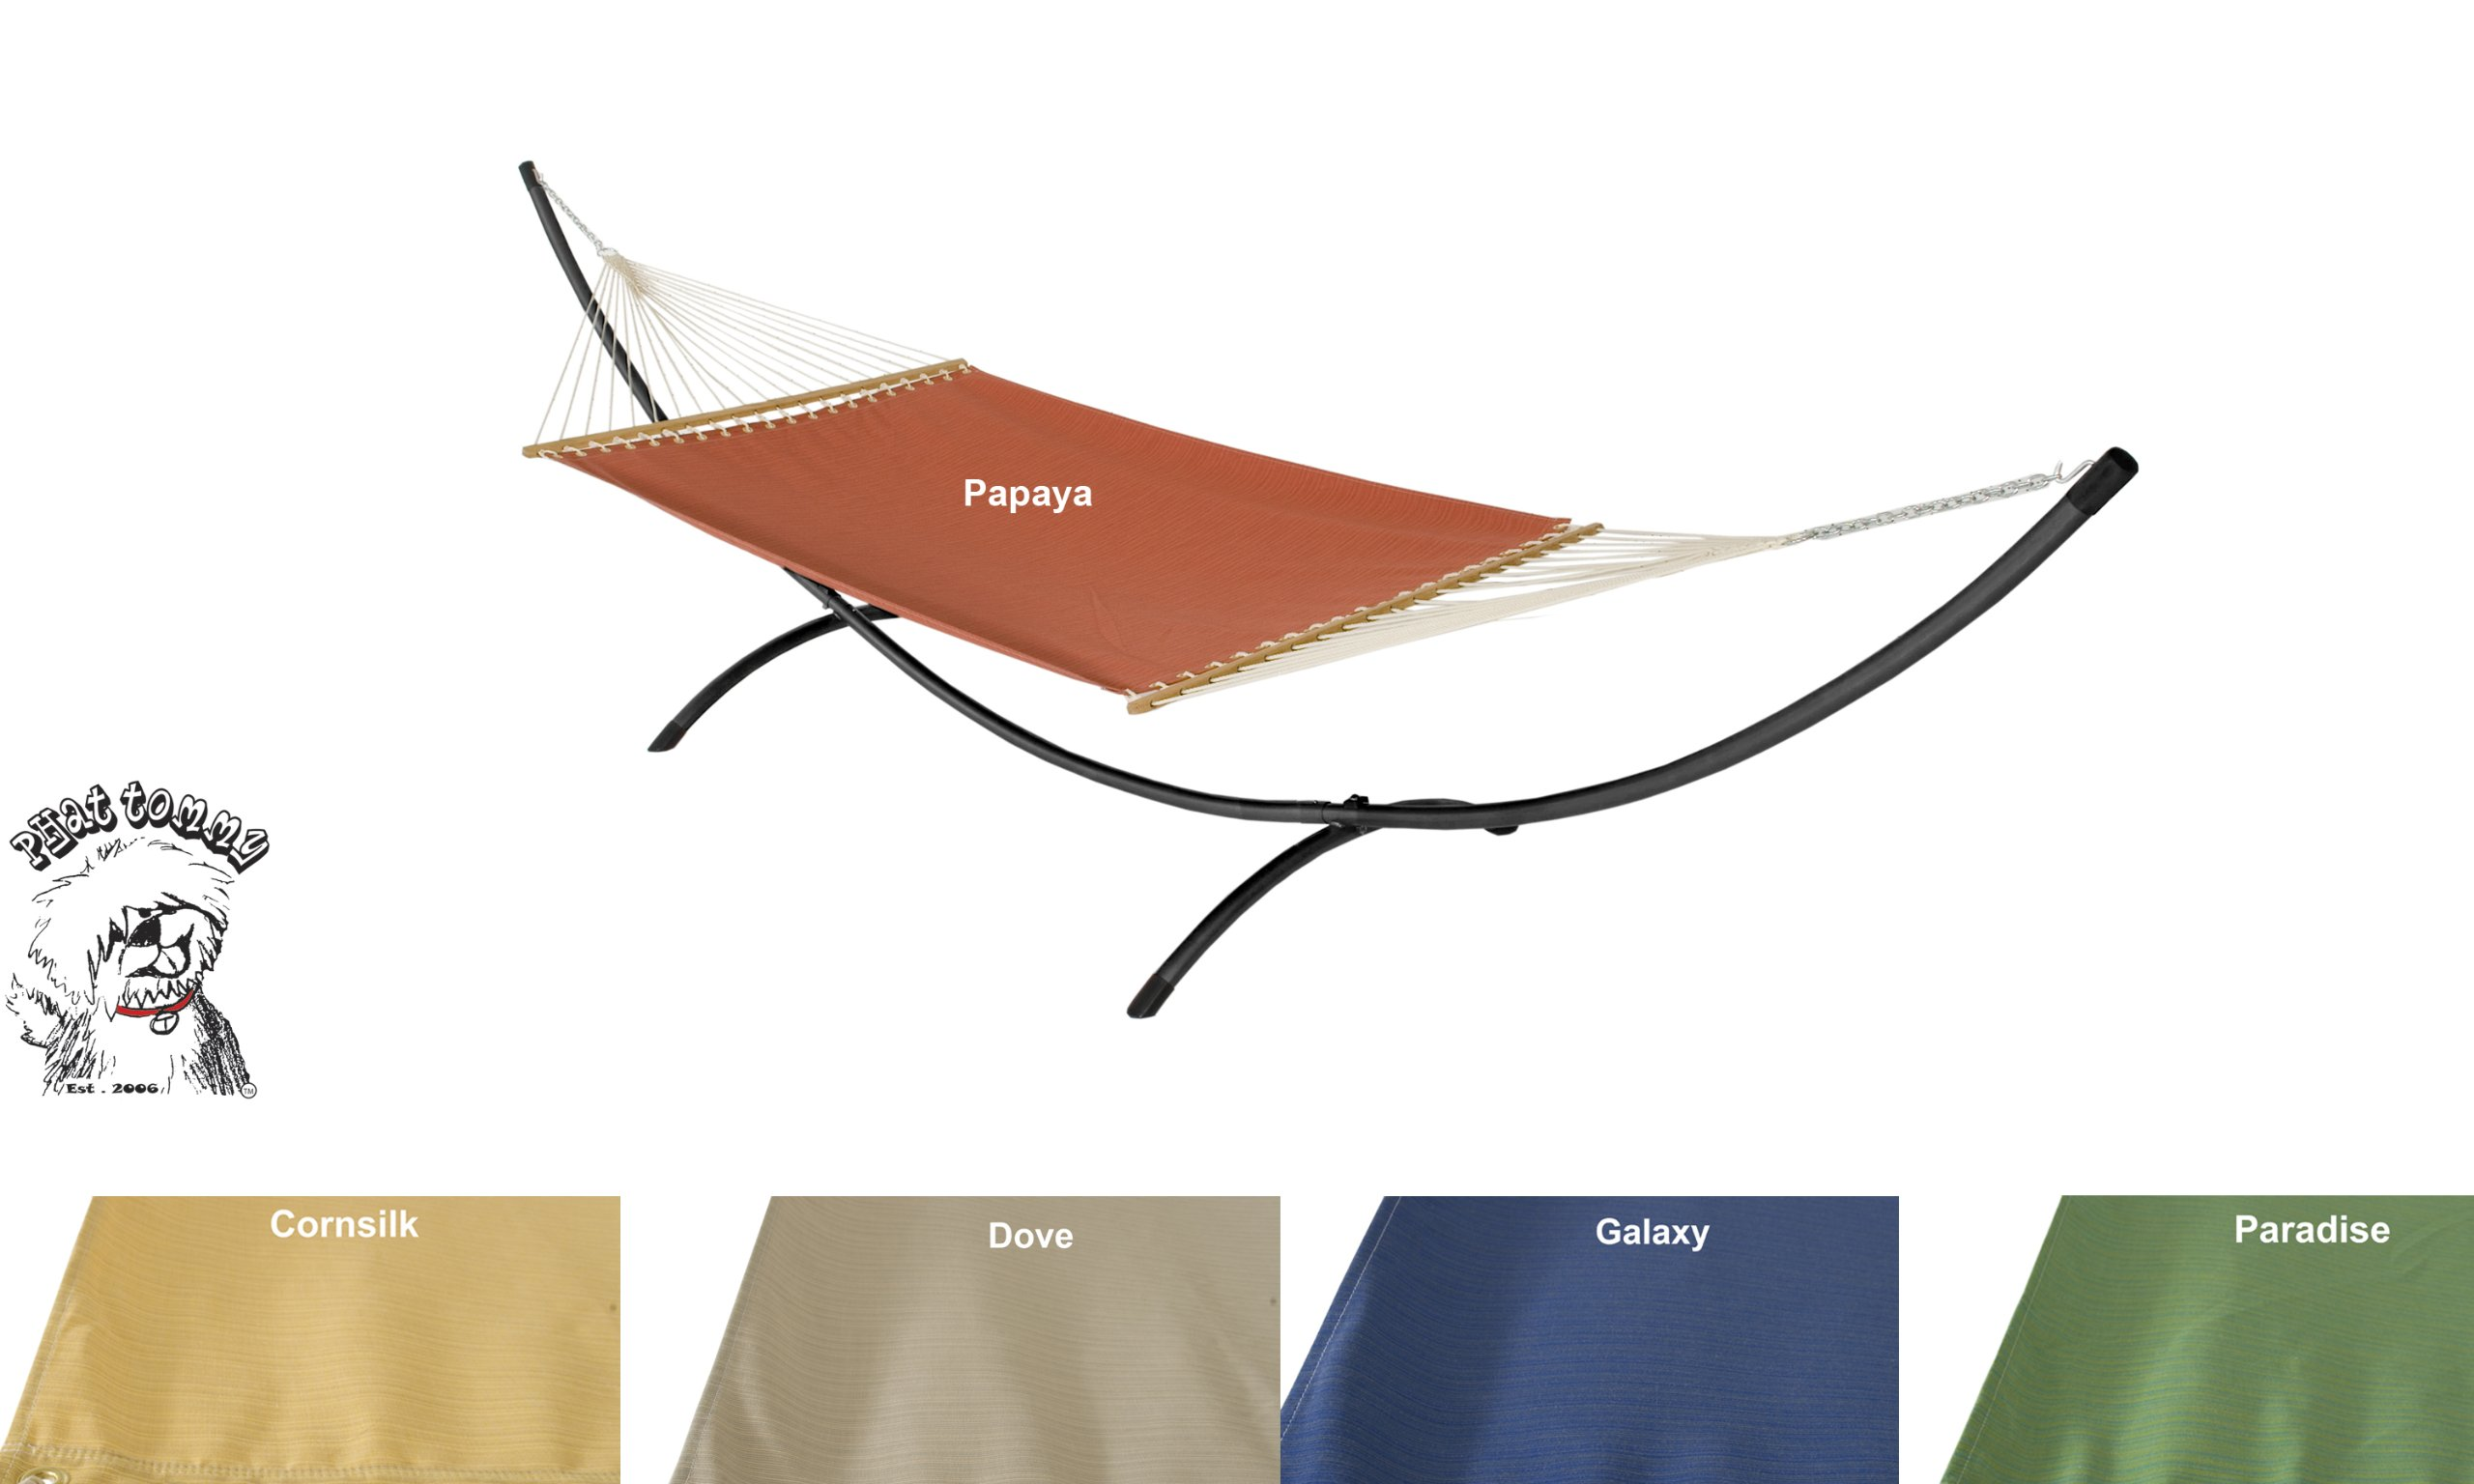 Phat Tommy Outdoor Sunbrella Garden Hammock and Stand Set - For your Backyard and Pool Area. Made in the USA, Dove